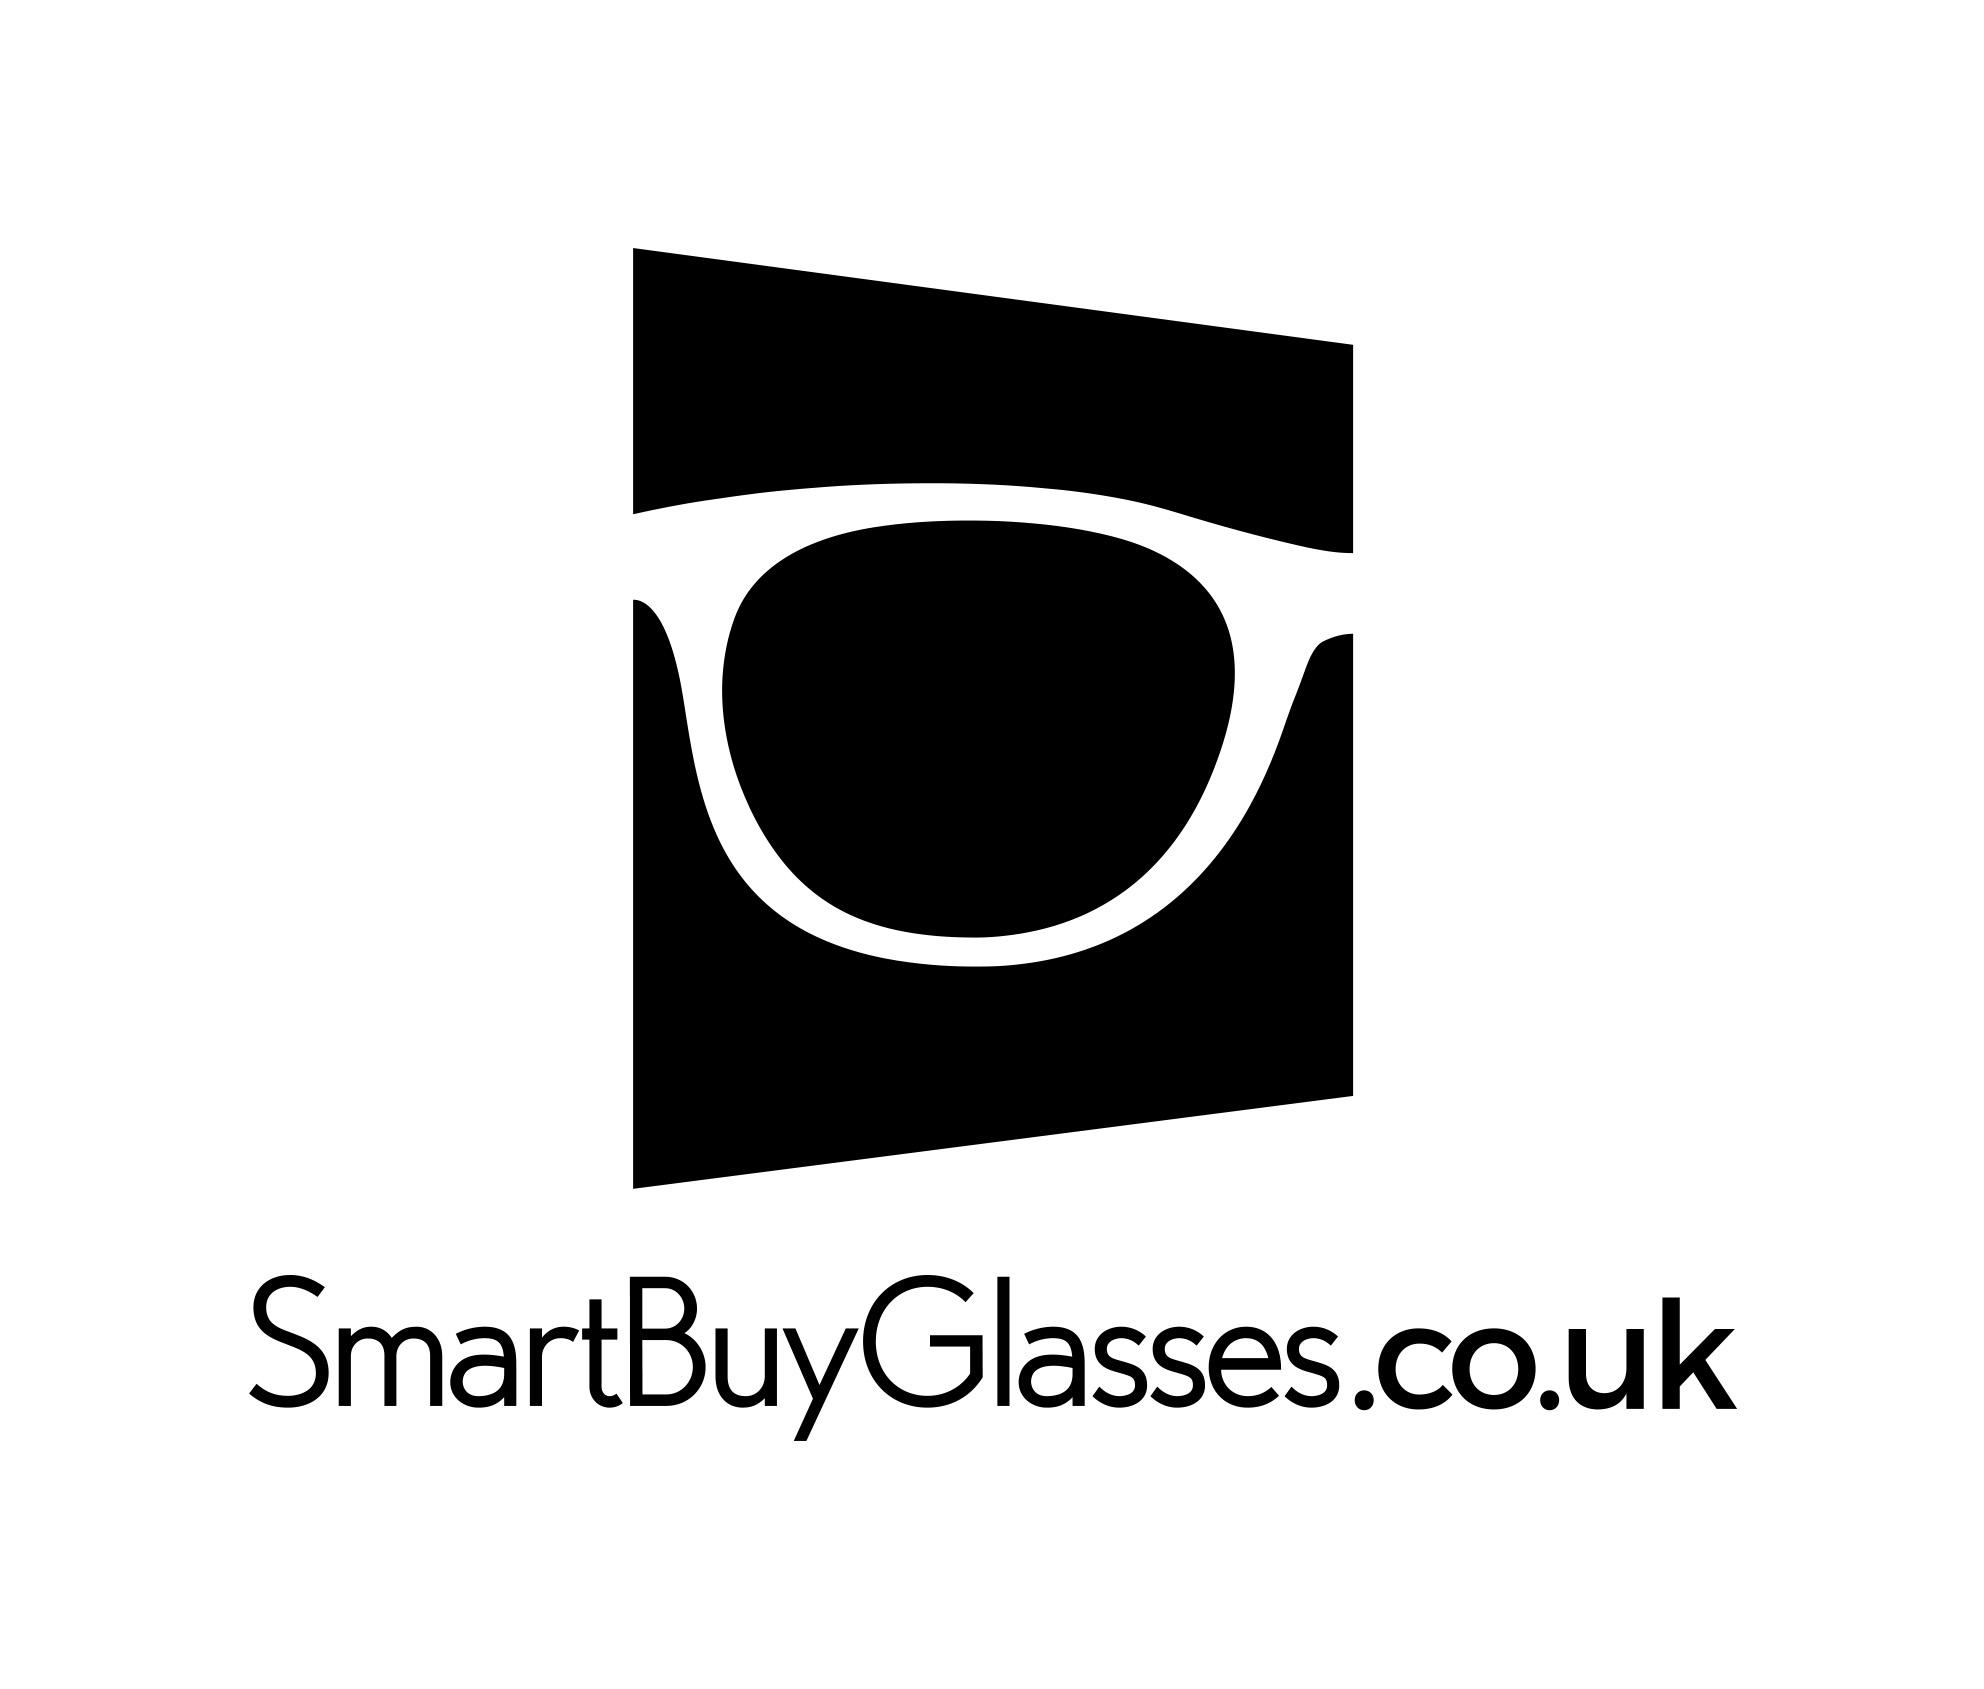 October offer - 20% off on Arise collective lenses with any eyeglasses and sunglasses frames